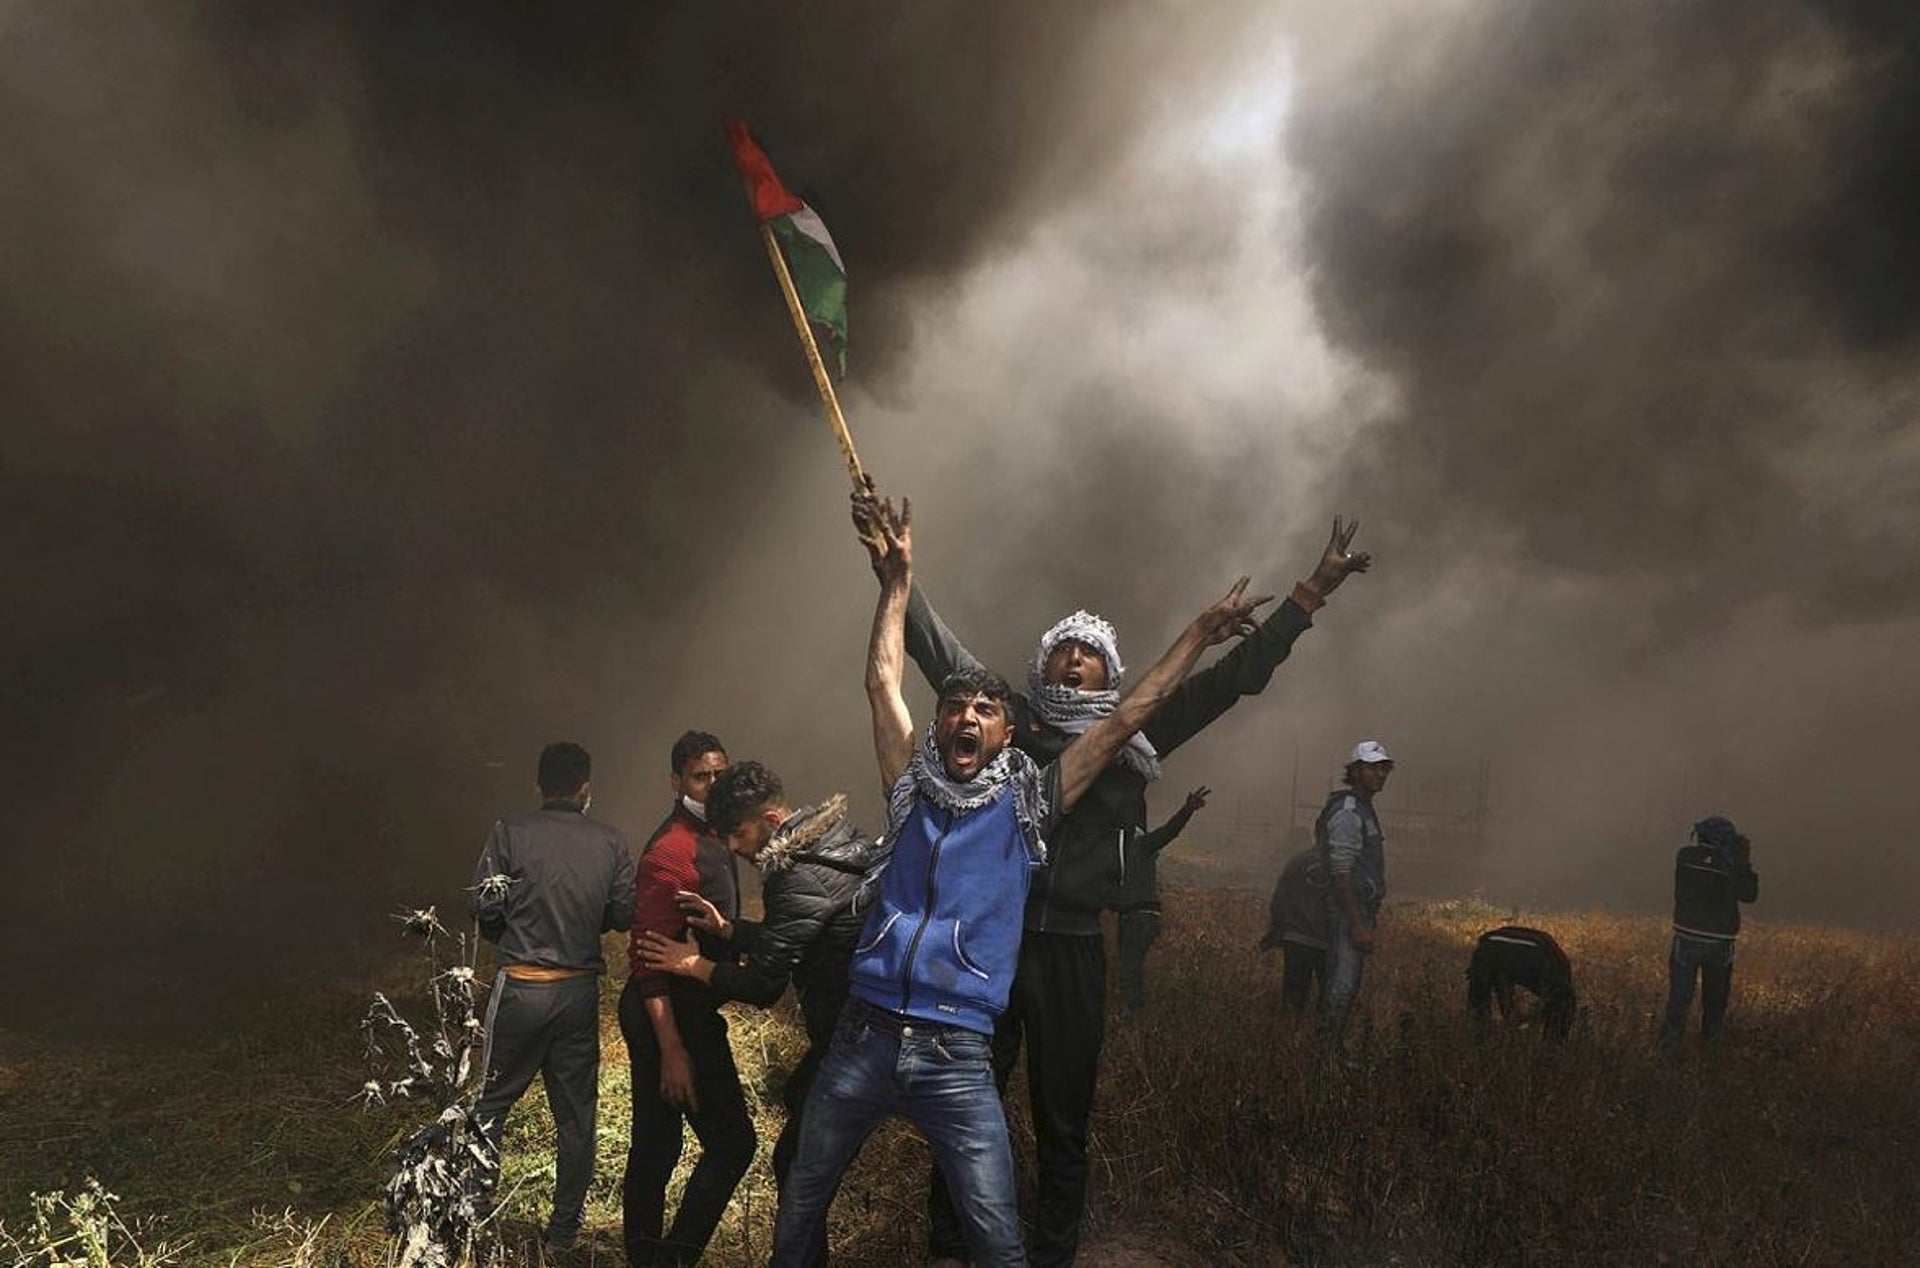 Palestinian demonstrators shout during clashes with Israeli troops at a protest demanding the right to return to their homeland, at the Israel-Gaza border east of Gaza City, April 6, 2018. REUTERS/Mohammed Salem